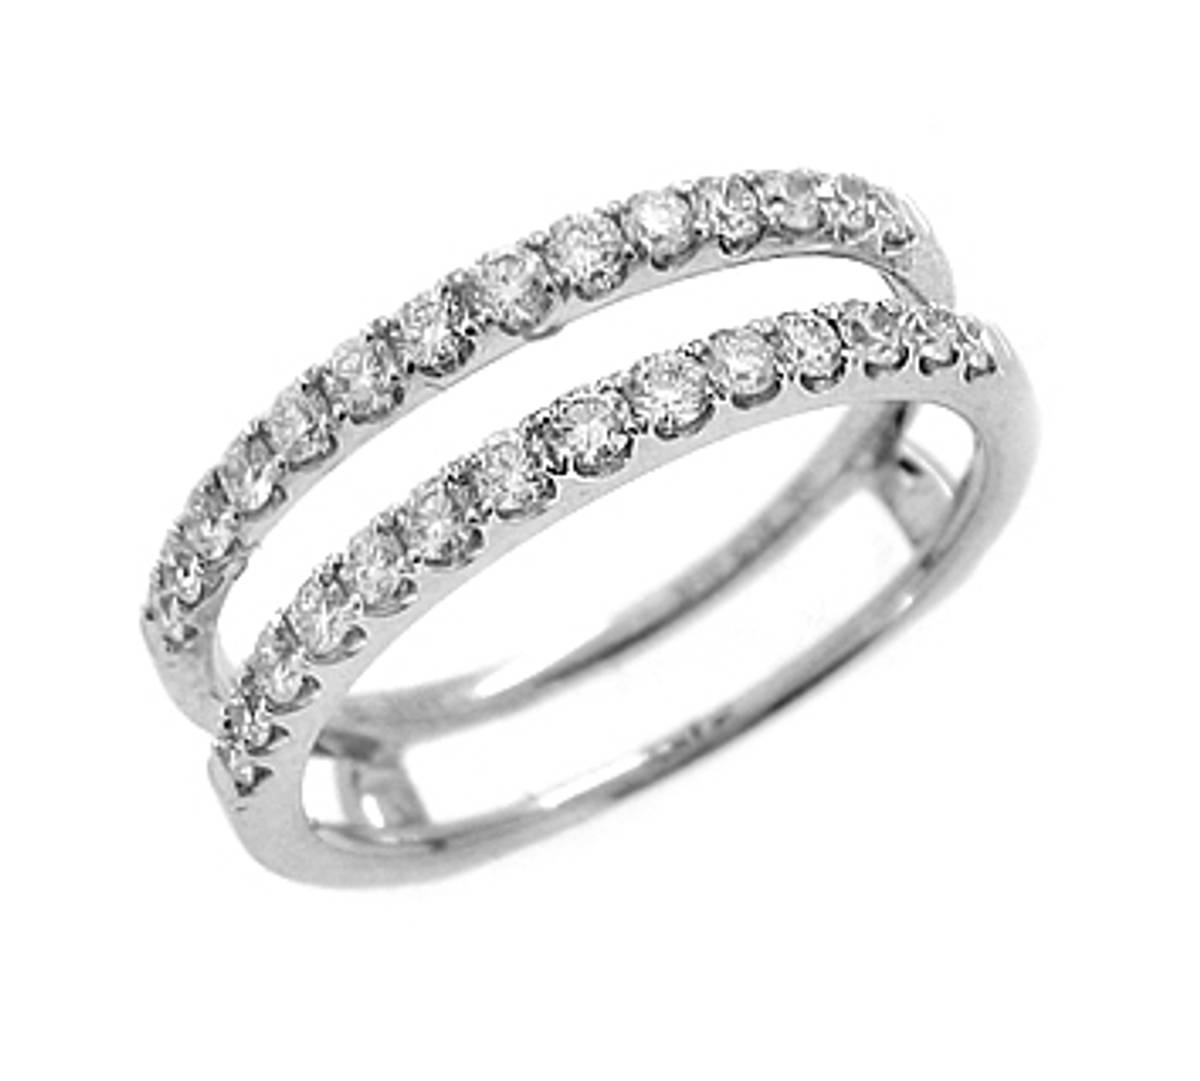 18k white gold brilliant cut diamond keeper ring Total diamond weight 0.46cts 18k white gold